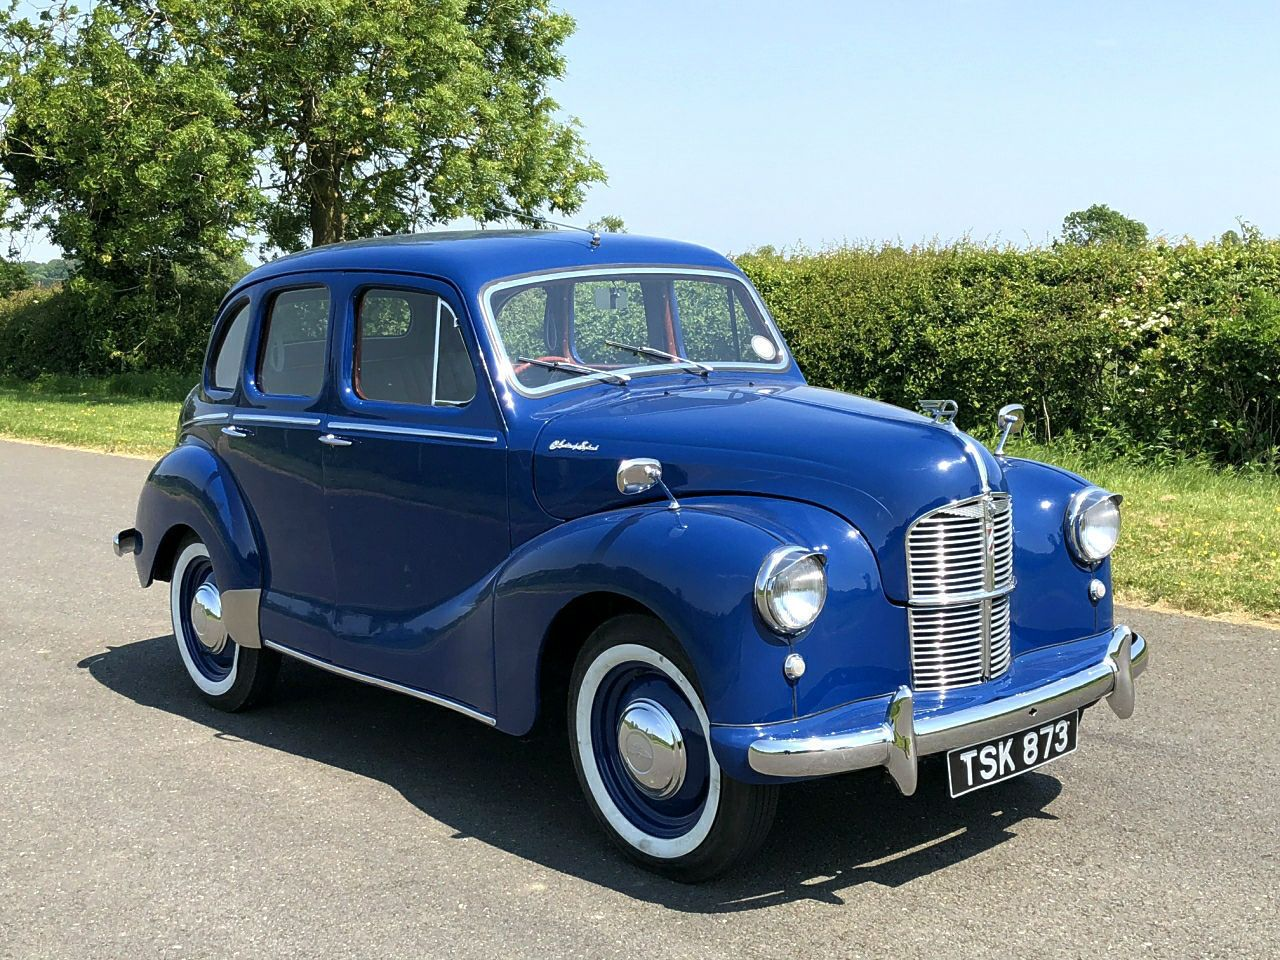 1950 Austin A40 Devon Saloon Beautifully Restored Austin Cars Classic Cars Classic Cars British